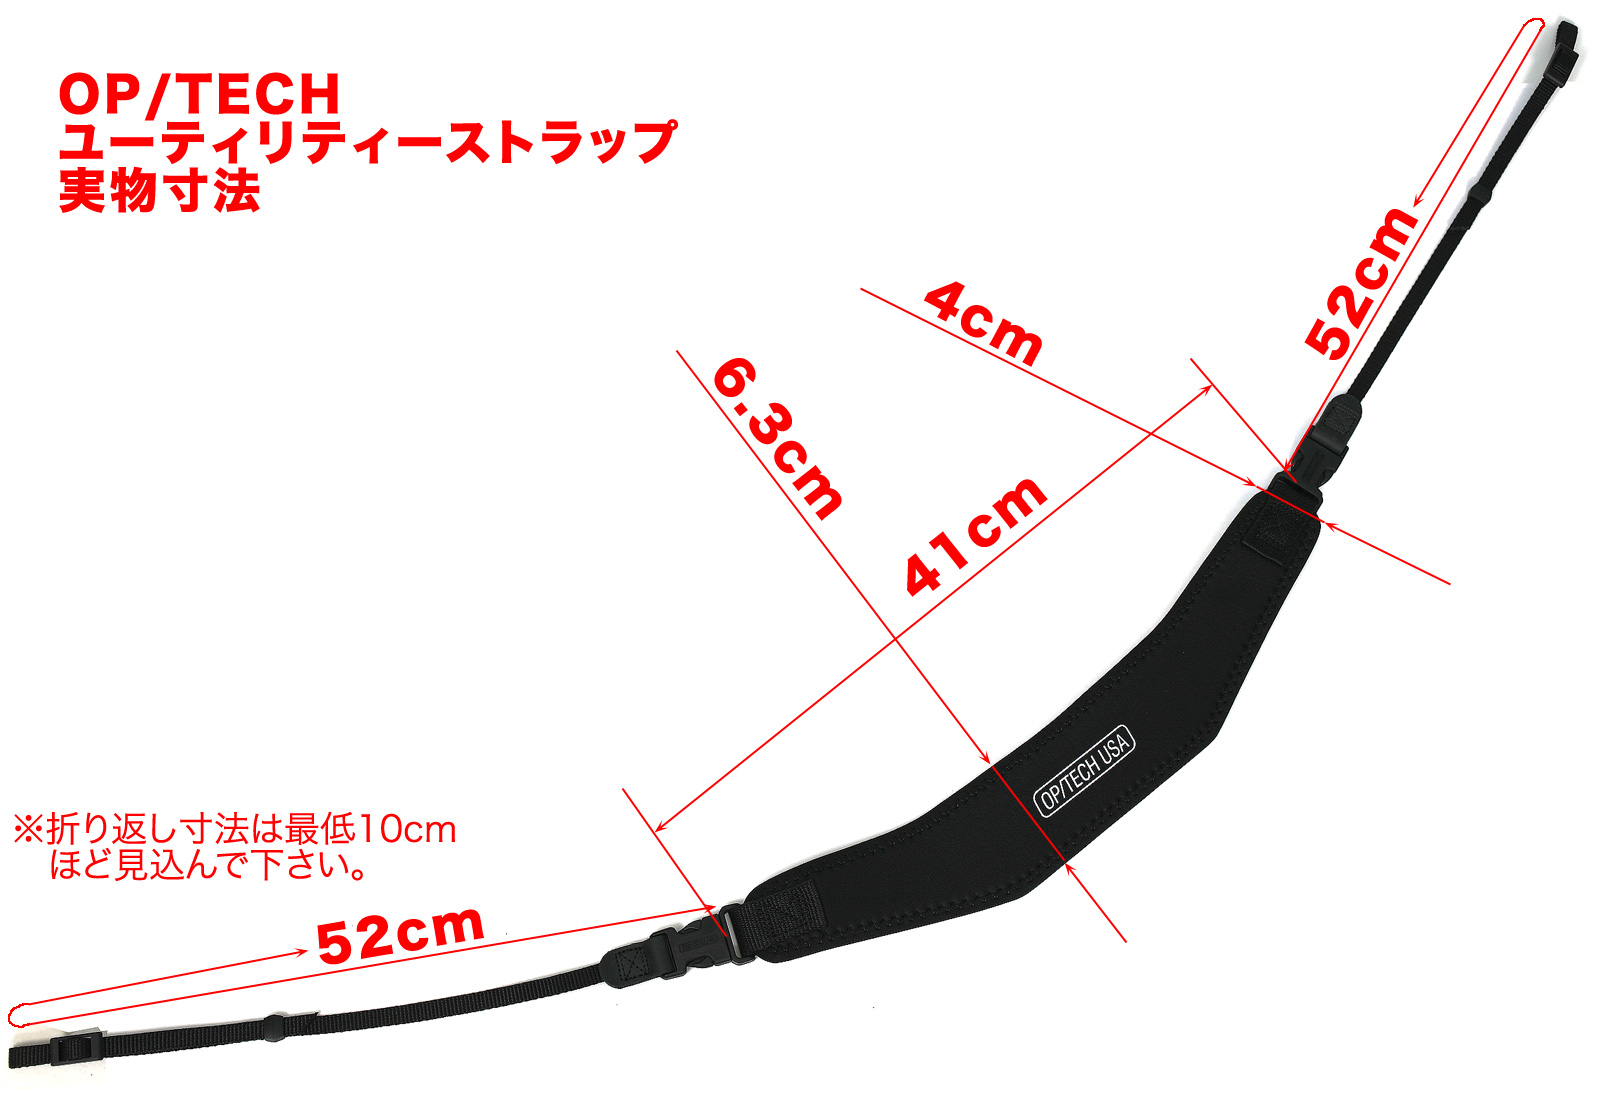 "Op/tech ( Optech ) ユーティリティース trap (3 / 8 ""Webbing)"" immediate delivery ~ 3 business days after shipment will ' camera strap fs3gm shrine to the brink of neoprene material to fit shoulder wide design, durability-up"